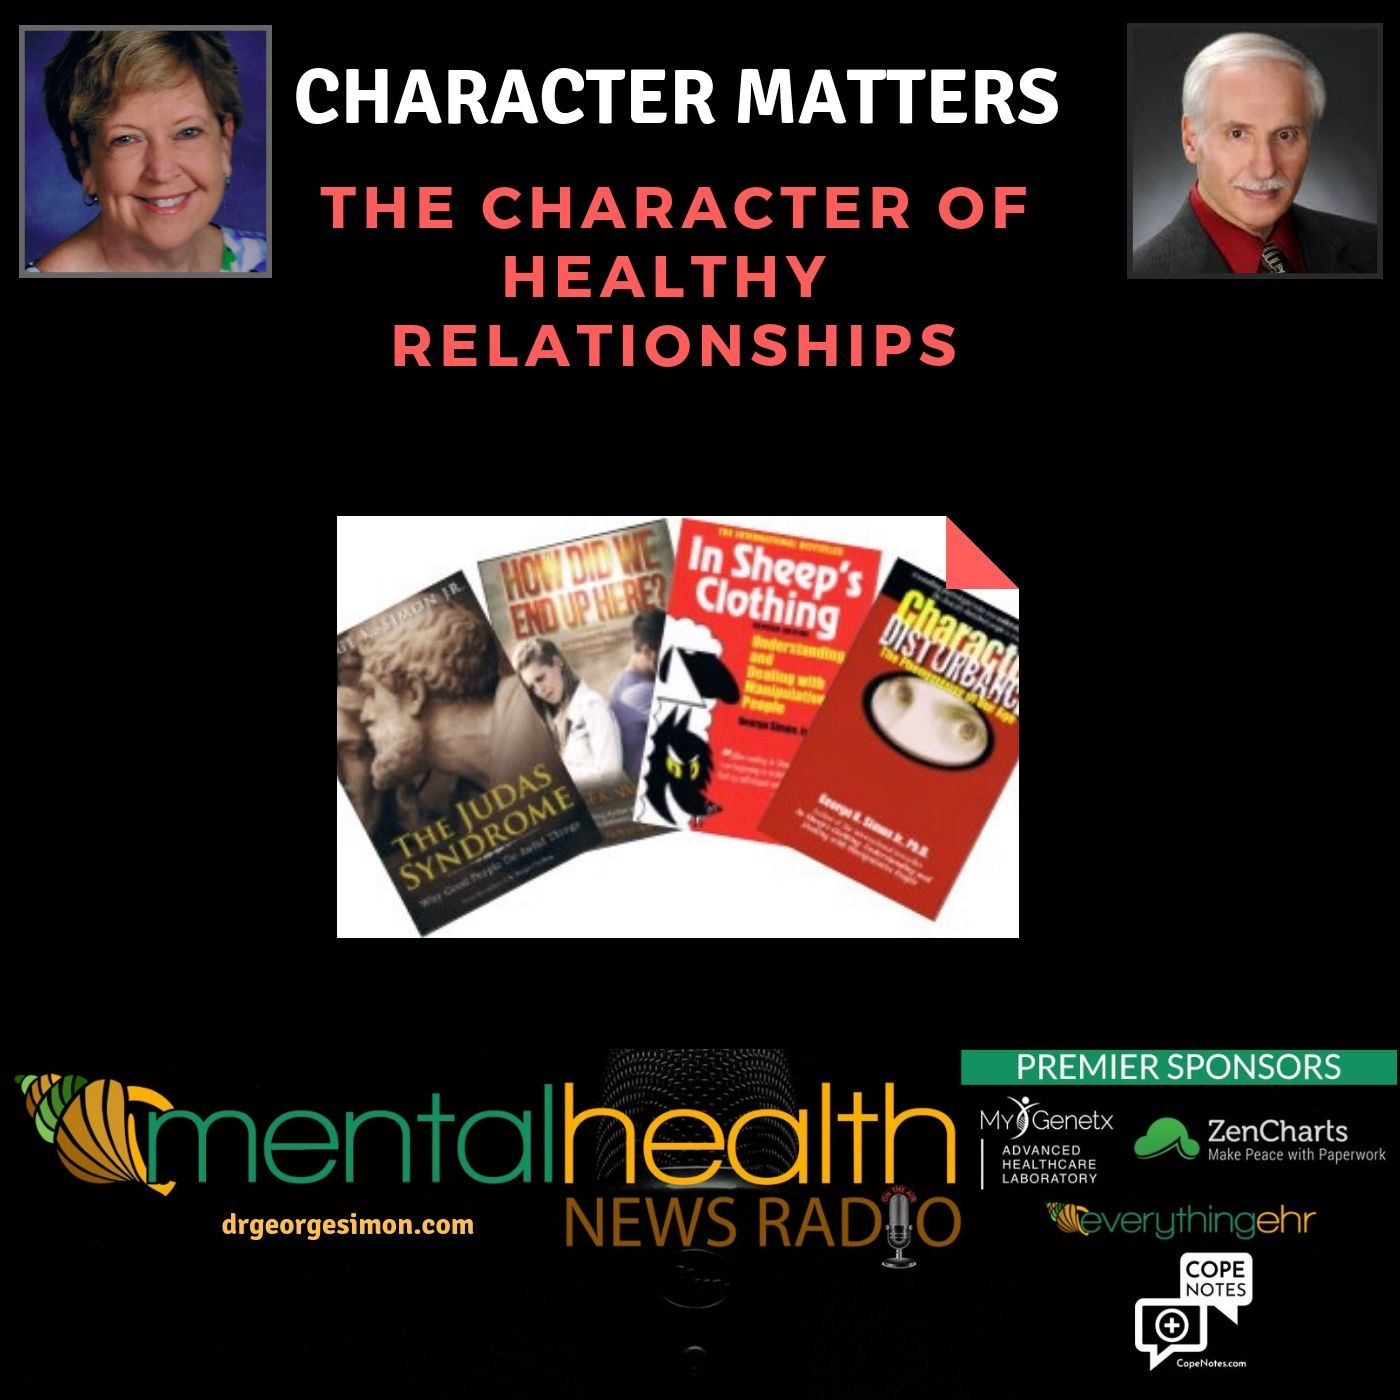 Mental Health News Radio - Character Matters: The Character of Healthy Relationships with Drs. George and Sherry Simon